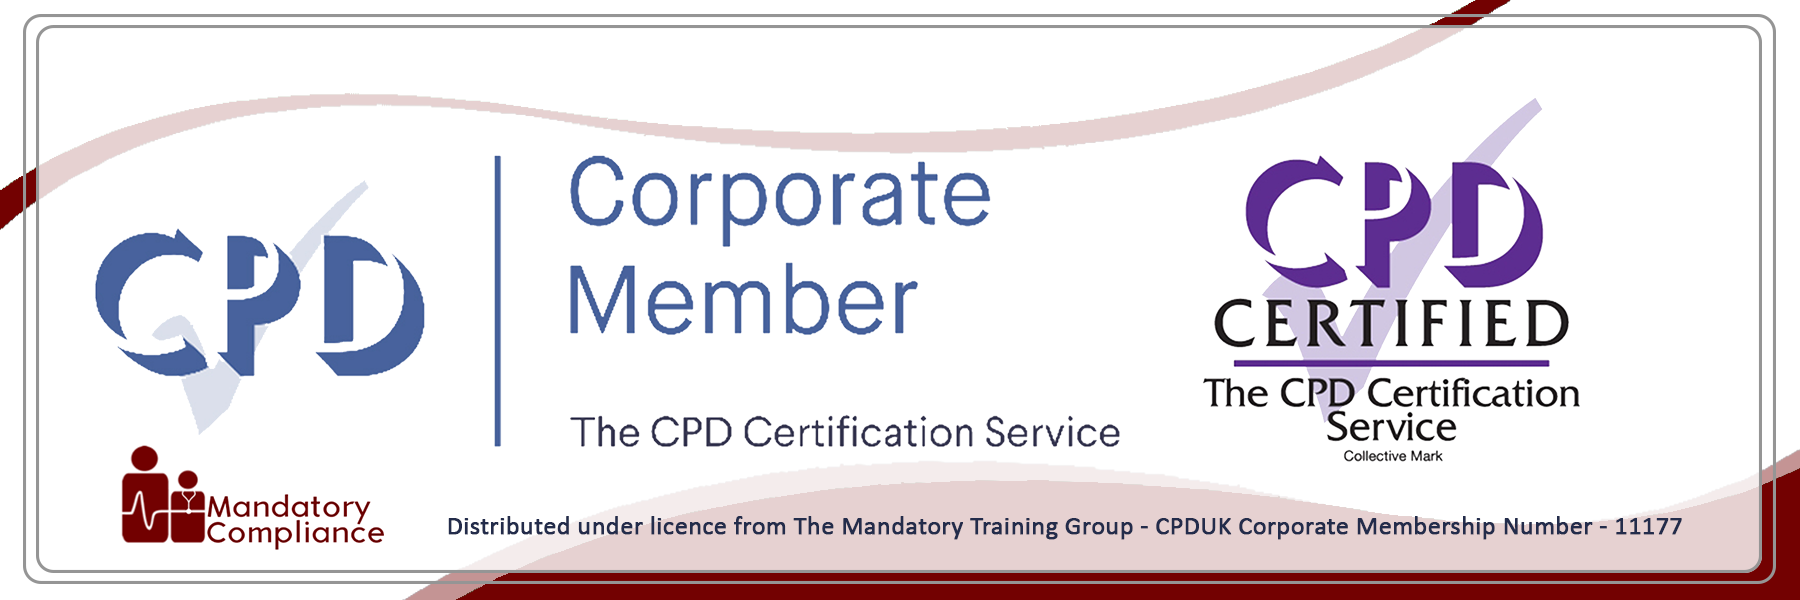 Entrepreneurial Skills - Online Training Course - CPD Accredited - Mandatory Compliance UK -